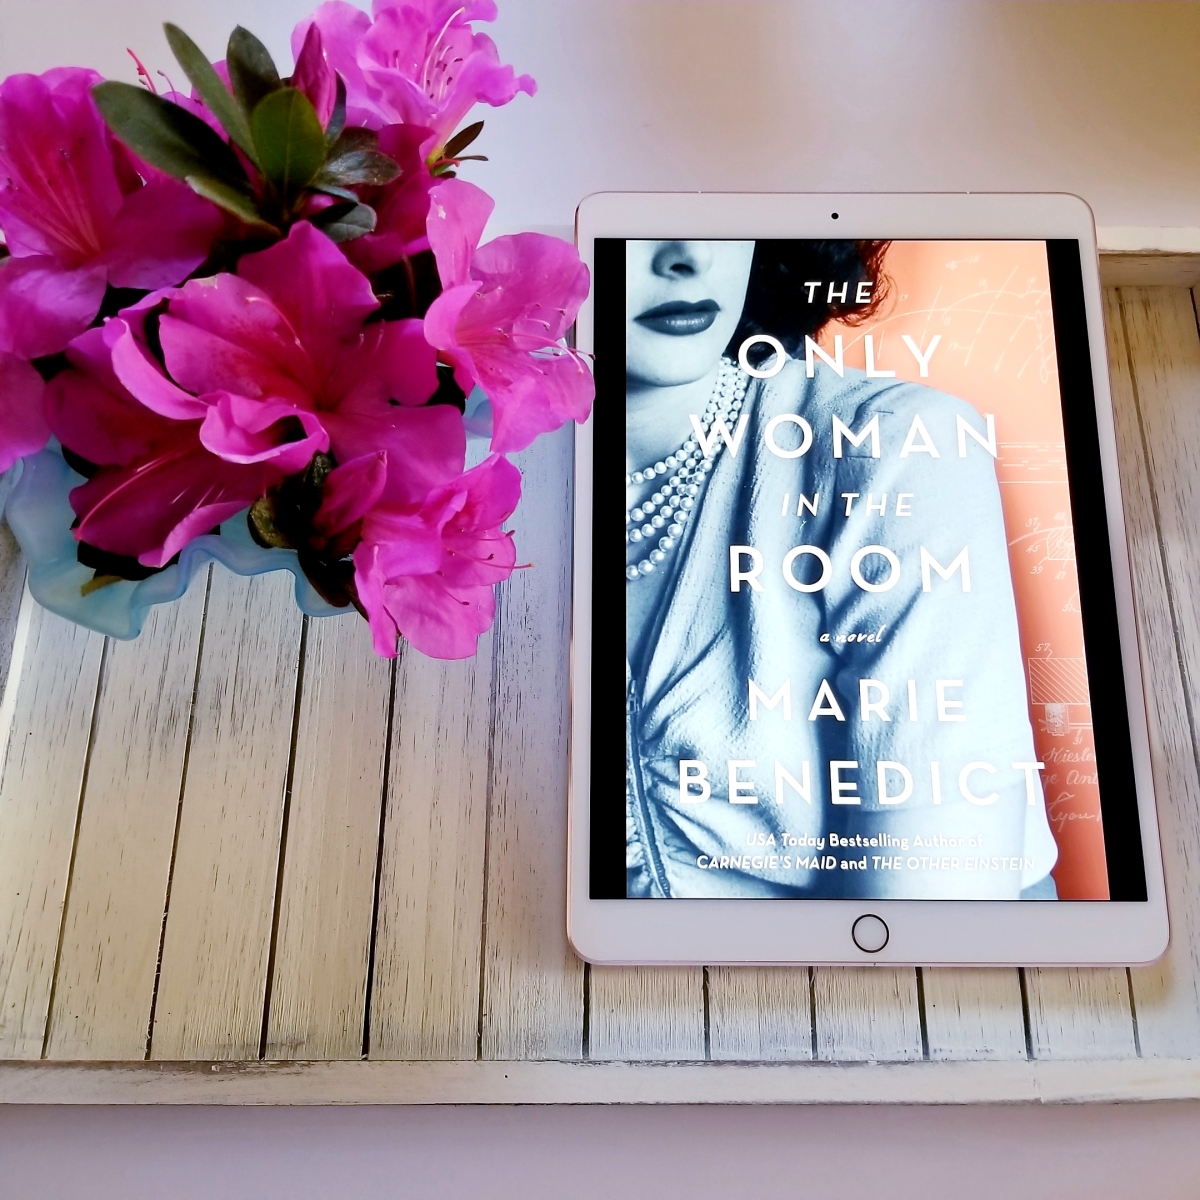 The Only Woman in the Room by Marie Benedict #bookreview #tarheelreader #thronlywoman #mariebenedict @sourcebooks @sbkslandmark #theonlywomanintheroom